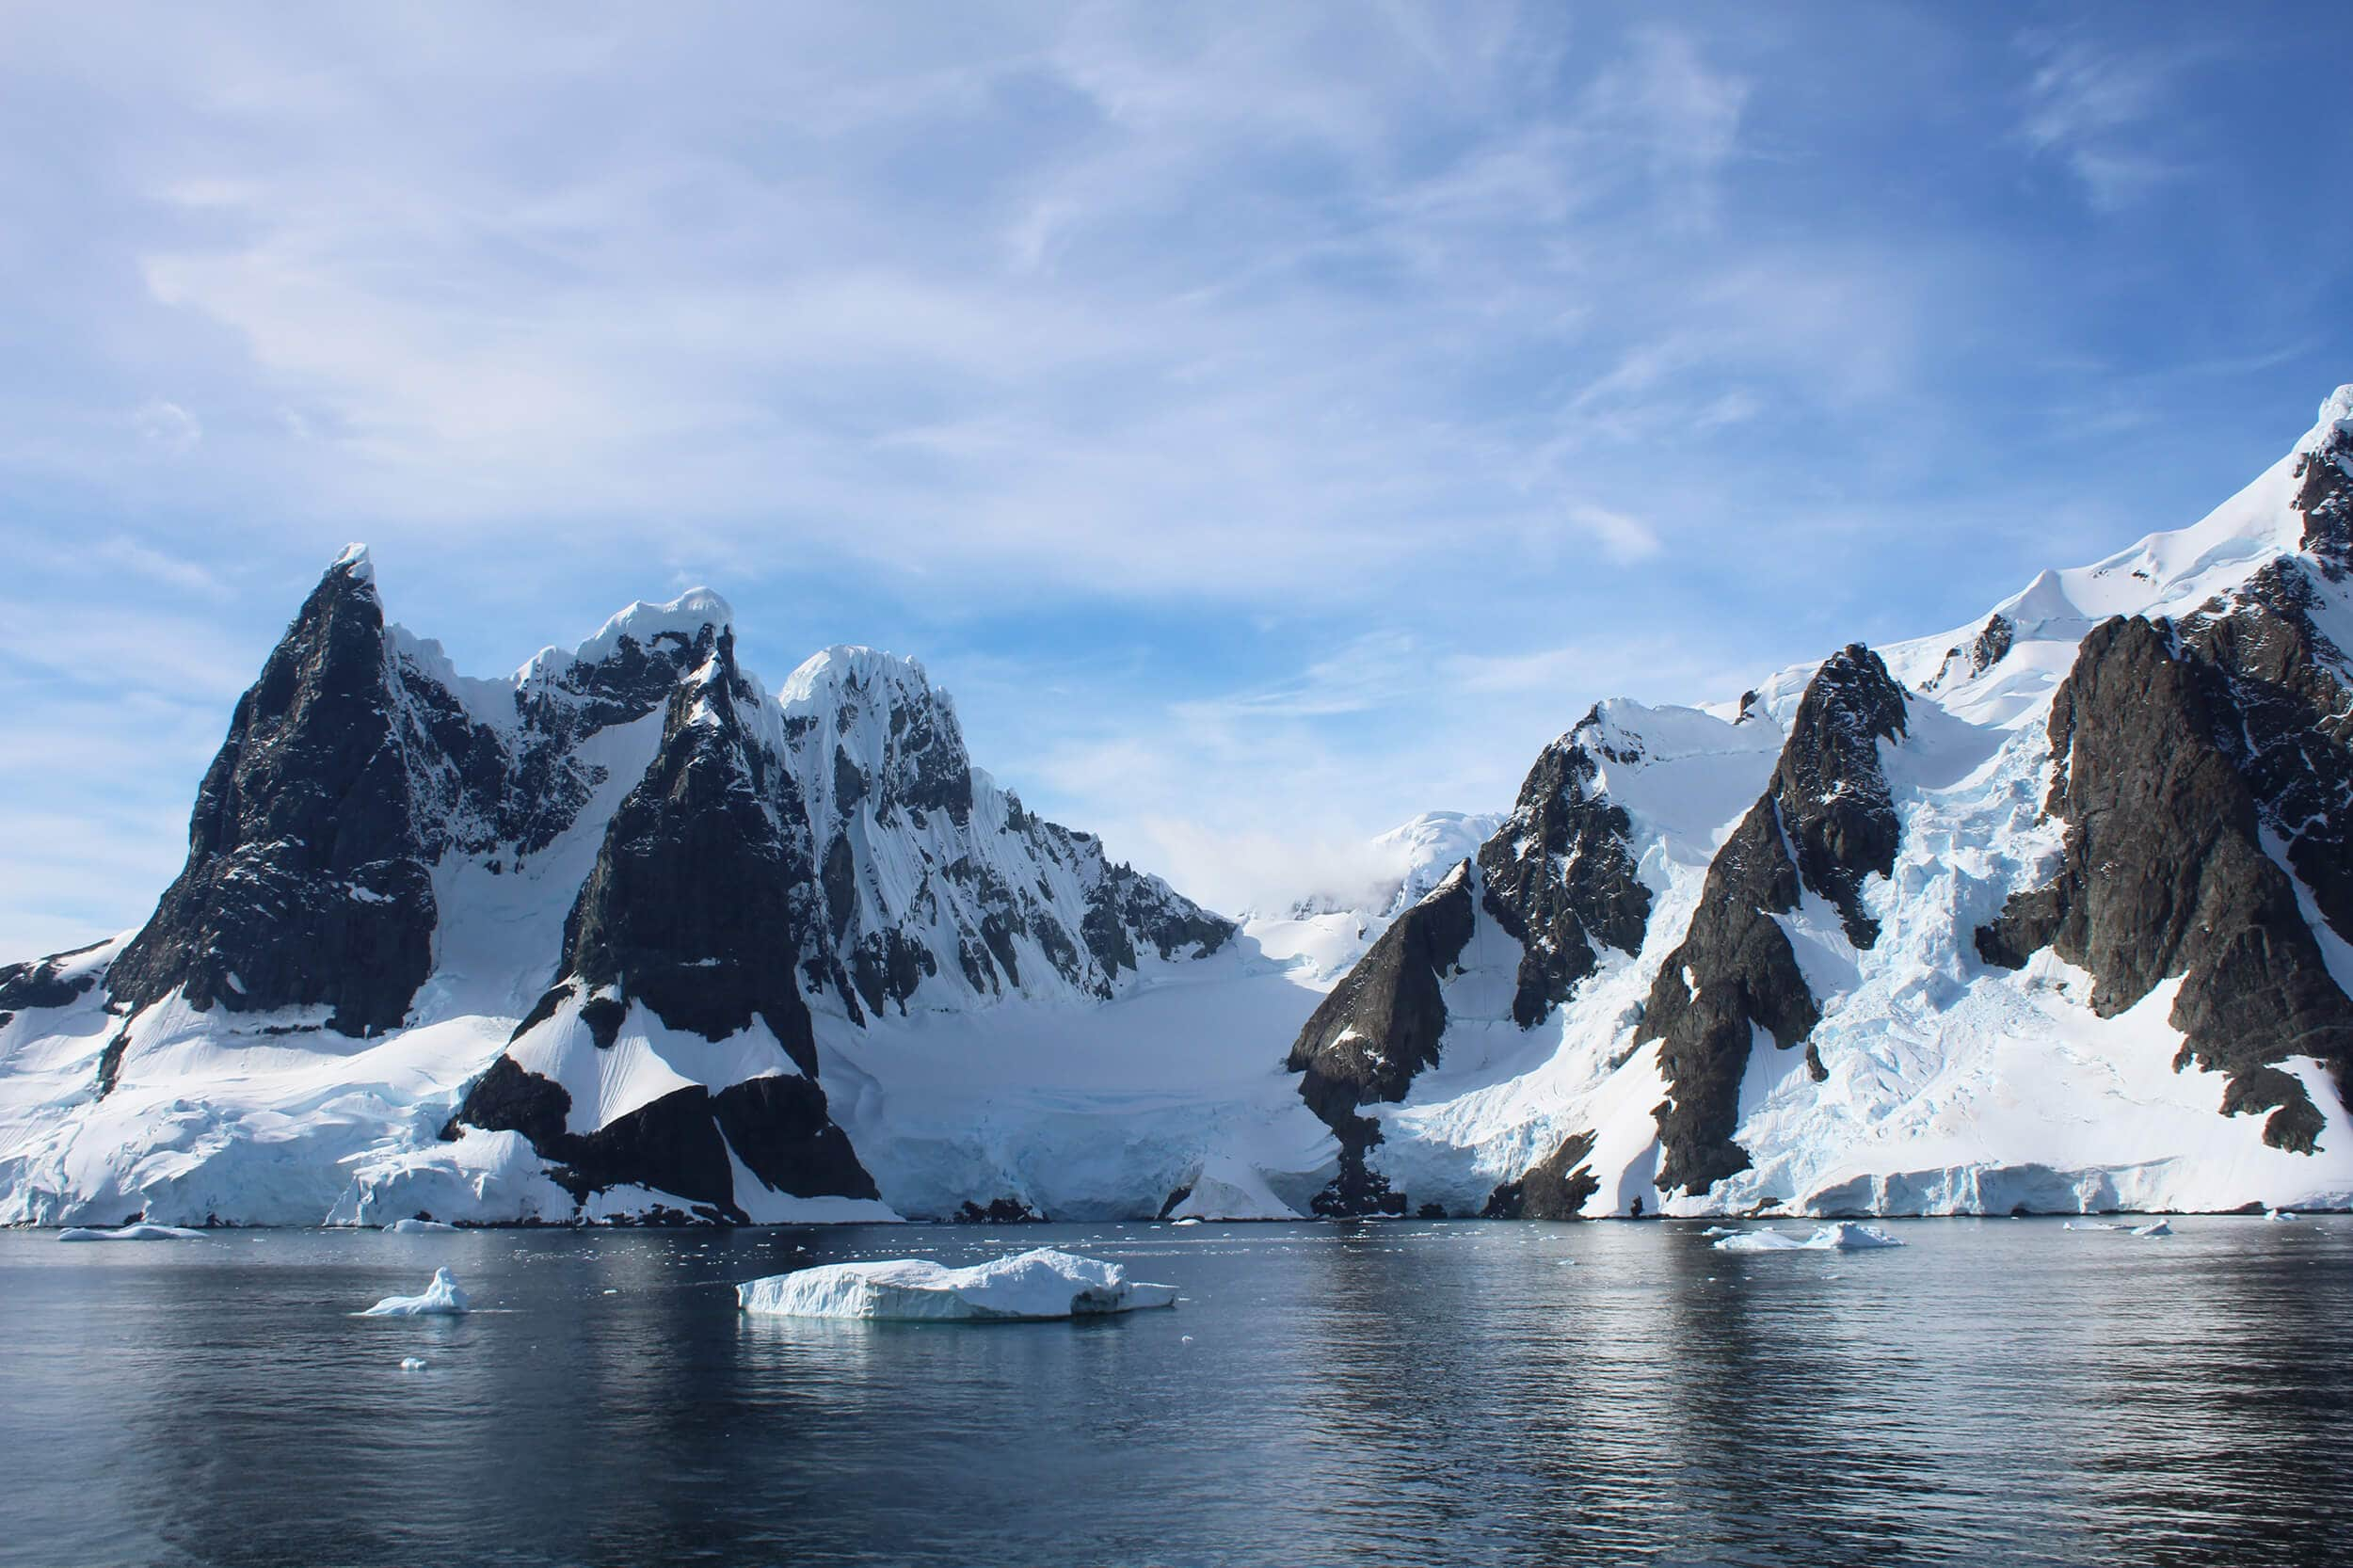 Travel bloggers reveal their favorite experiences in the world - Exploring and camping in Antarctica